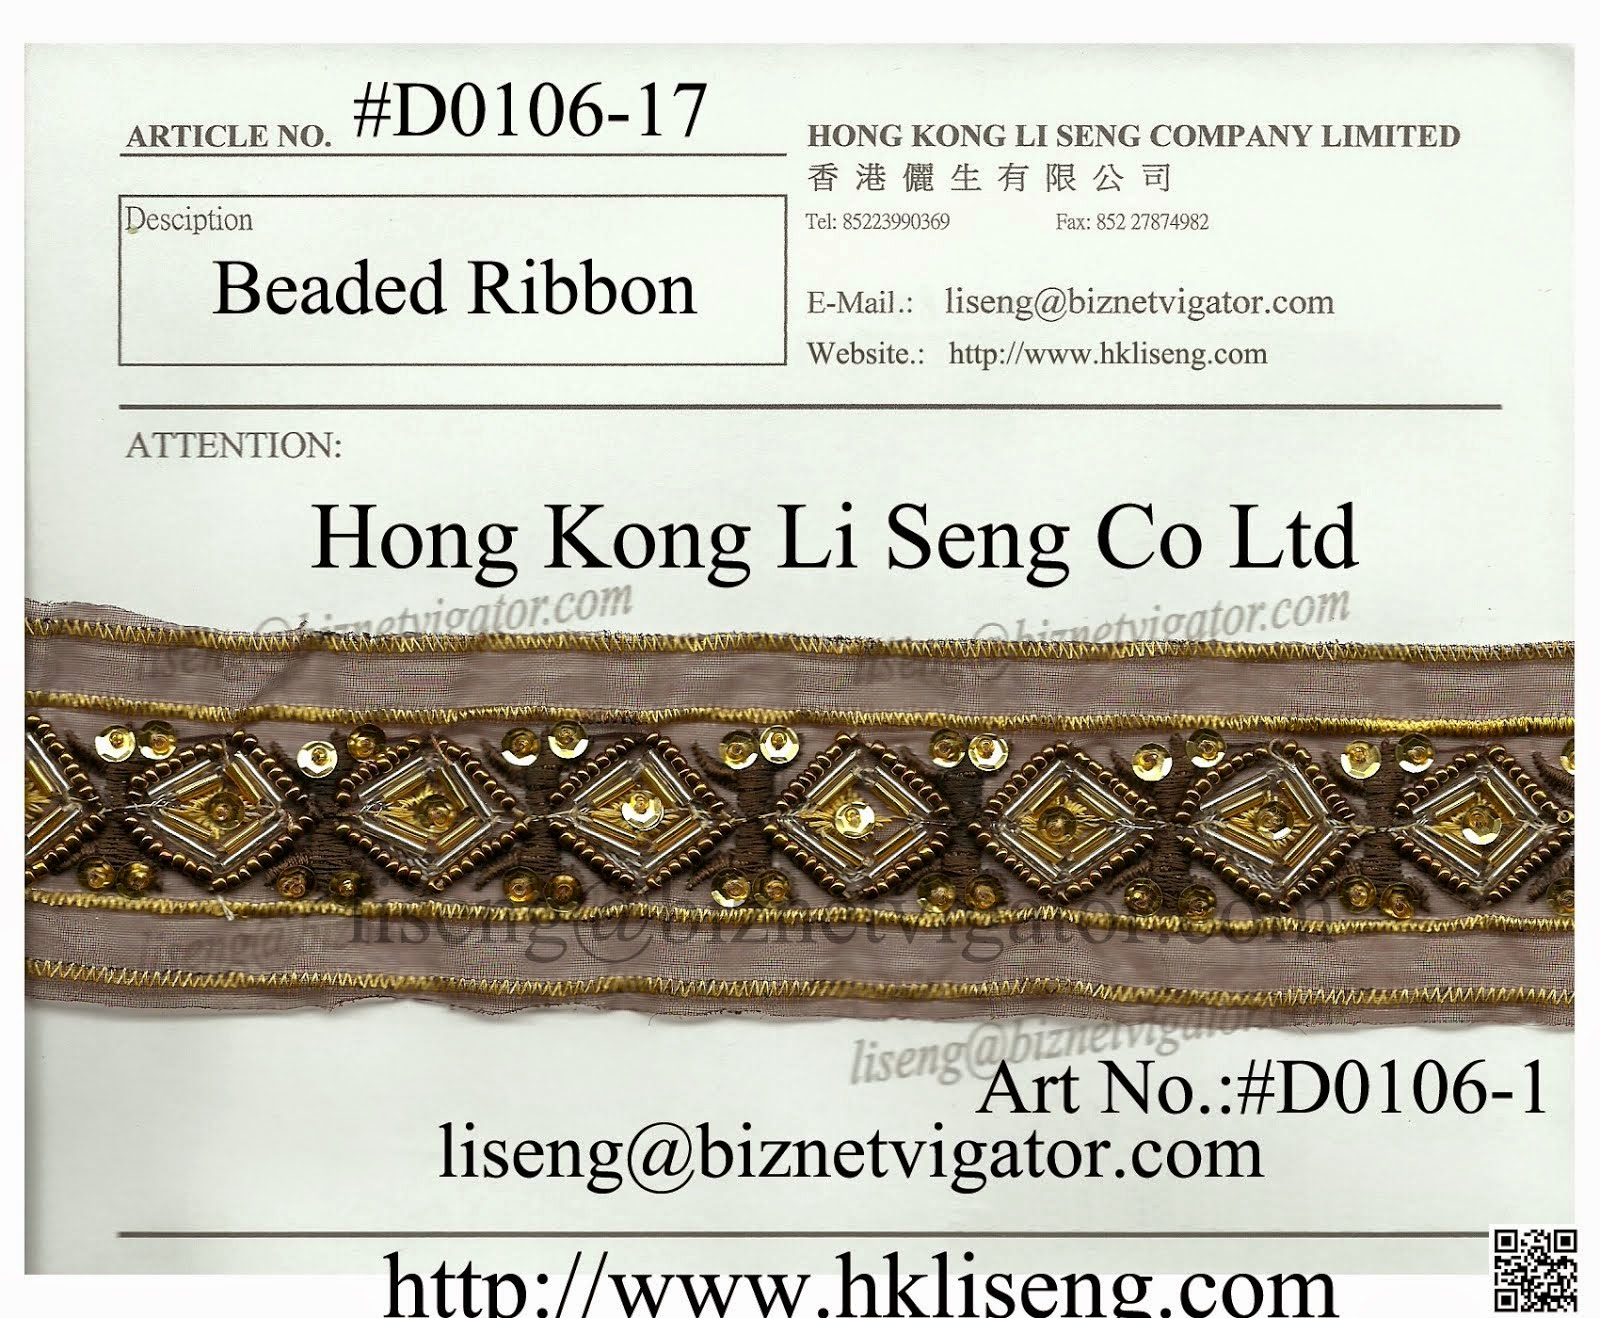 Beaded Ribbon Factory - Hong Kong Li Seng Co Ltd